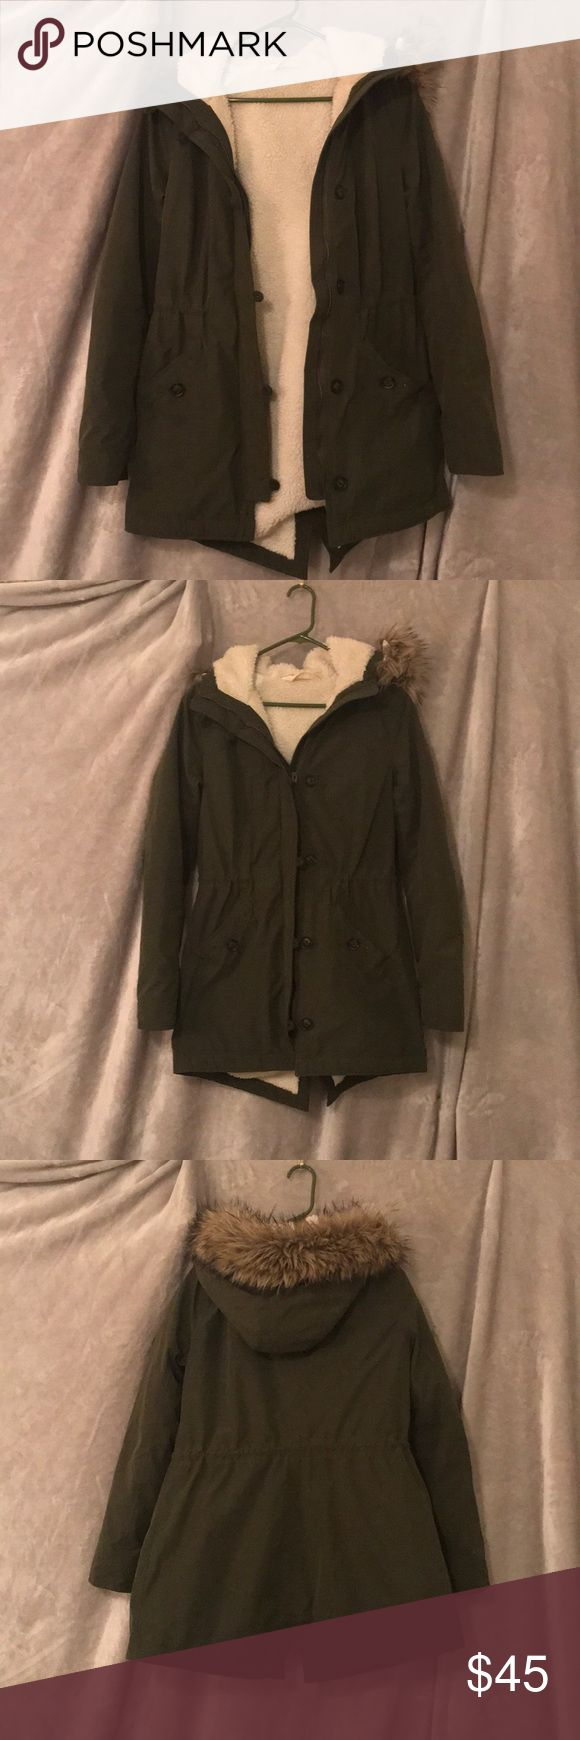 Sherpa lined hollister parka Sherpa lined khaki green hollister parka woman's medium like new condition. Hooded with feathers. Fall/winter coat pairs cute with any outfit!!!! Hollister Jackets & Coats